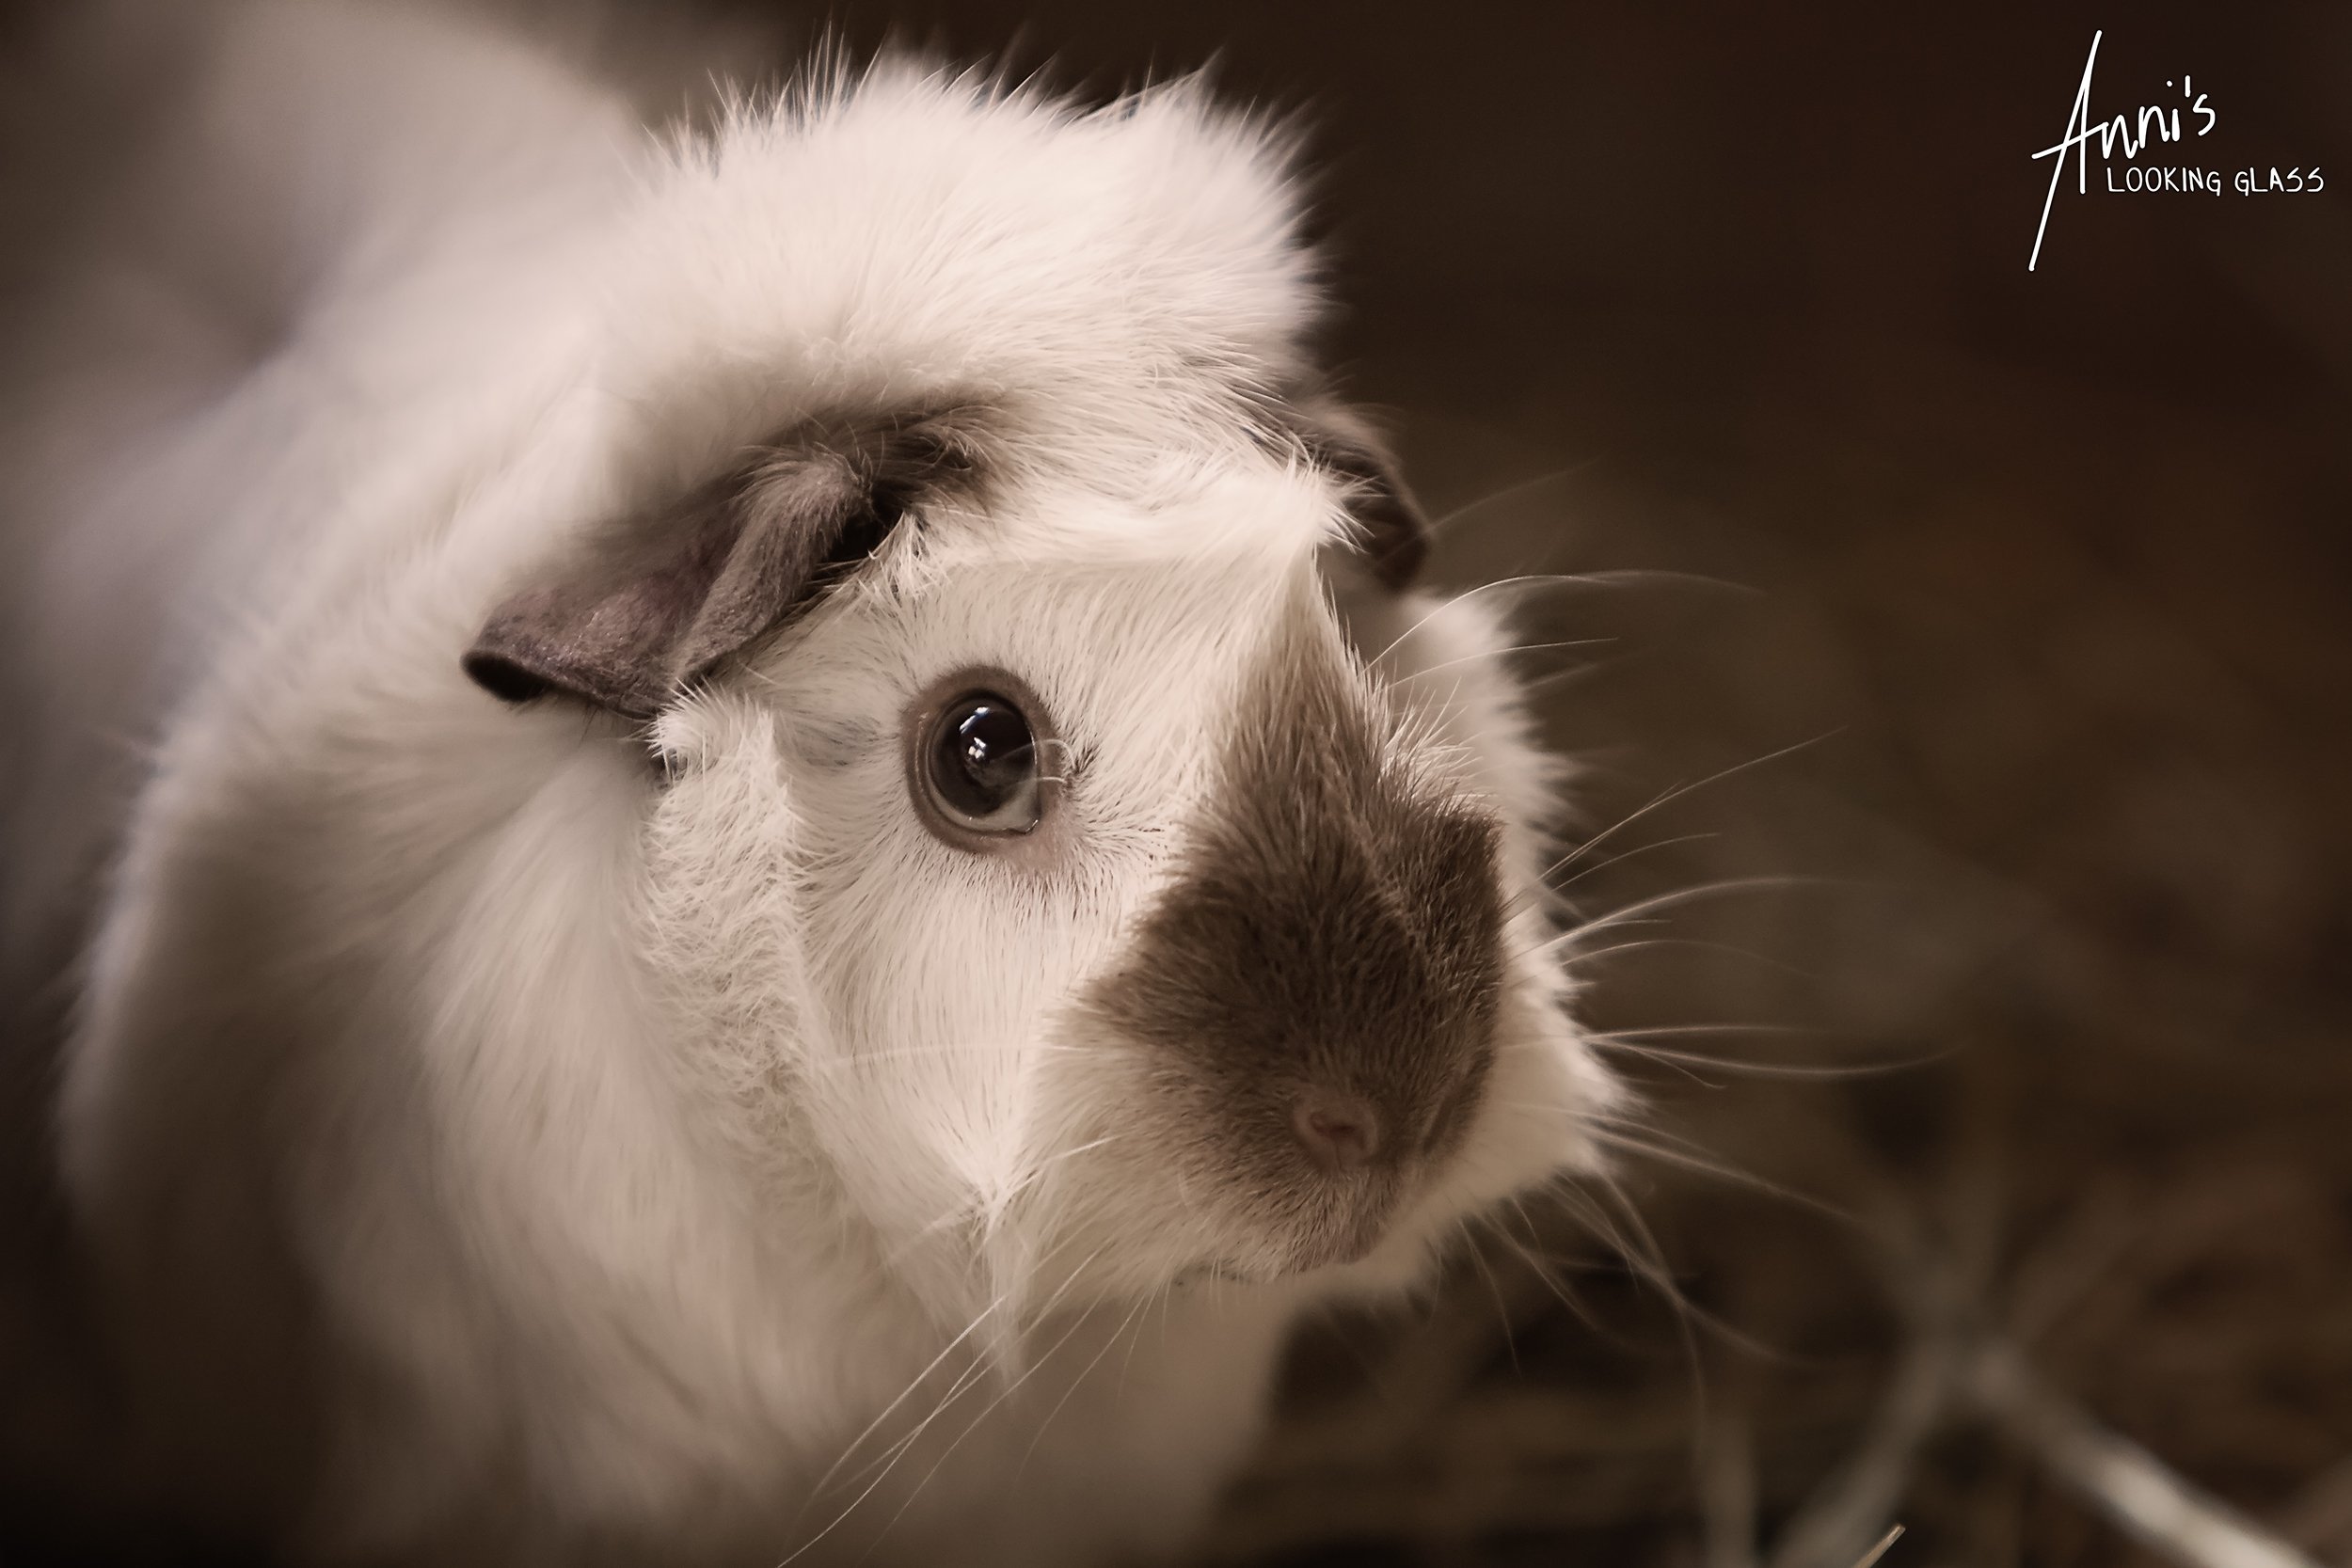 Mostly white guinea pig with a brown nose